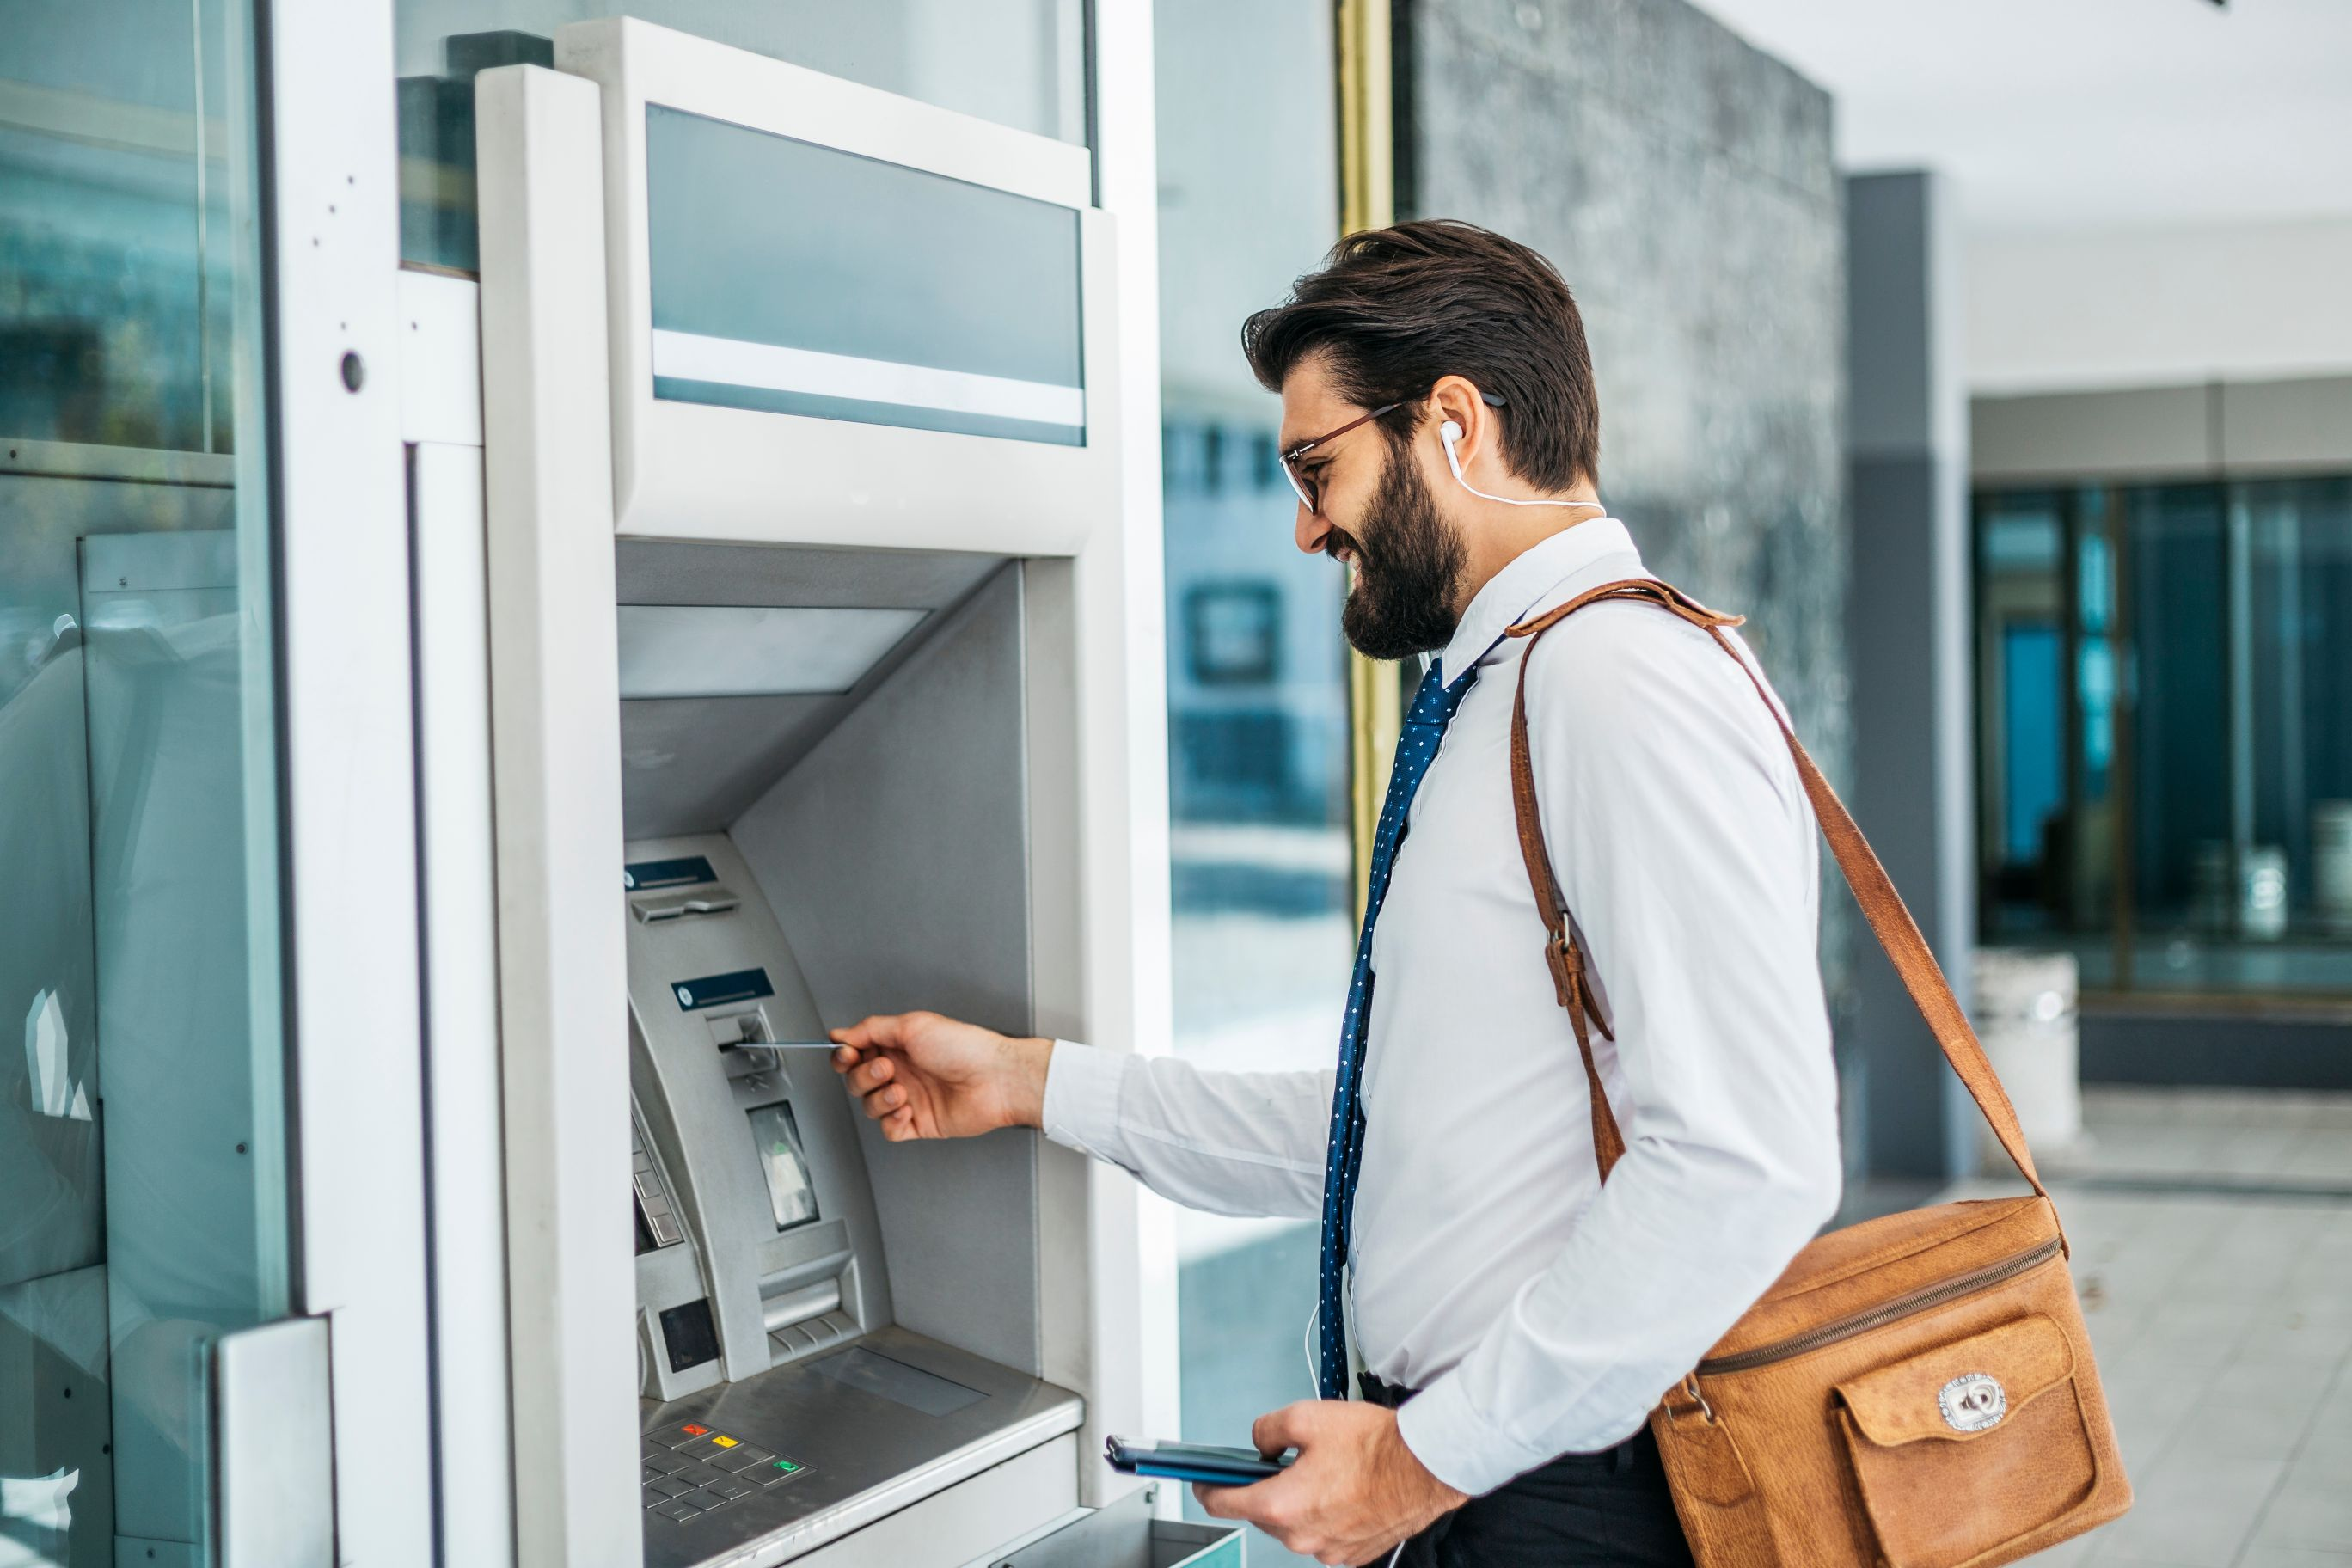 How much does an ATM cost?